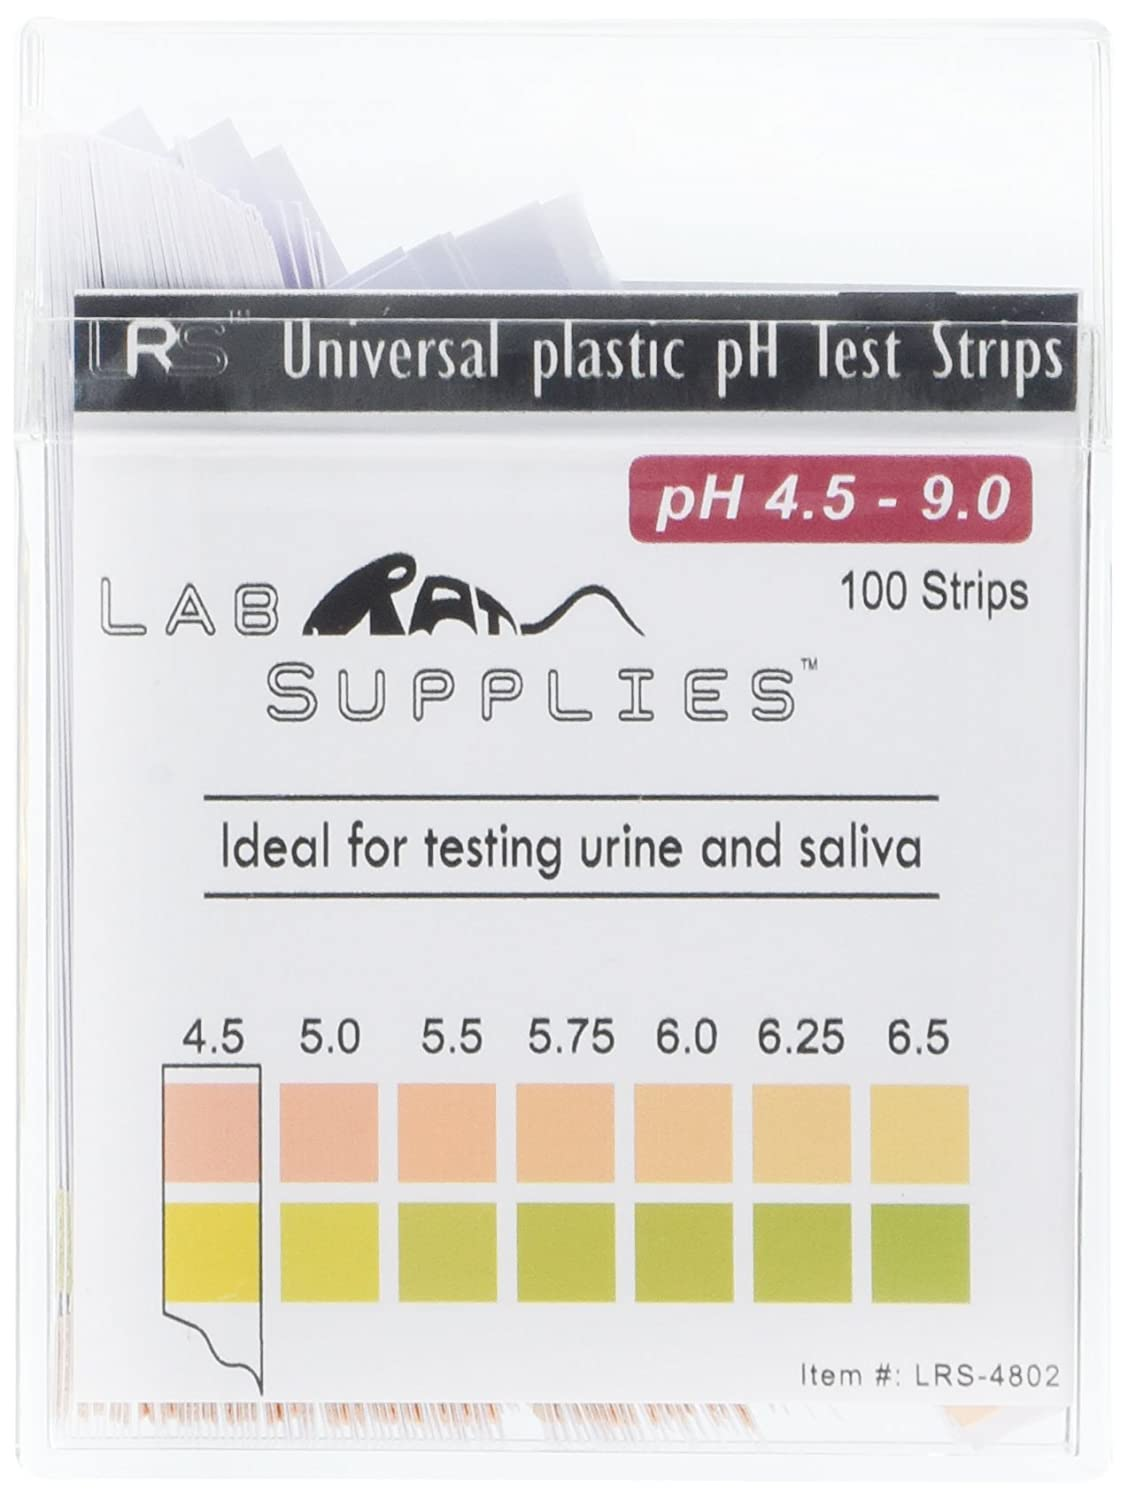 Plastic pH Test Strips, Universal Application (pH 4.5-9.0), 100 Strips | for Urine, Saliva, Aquariums, etc.